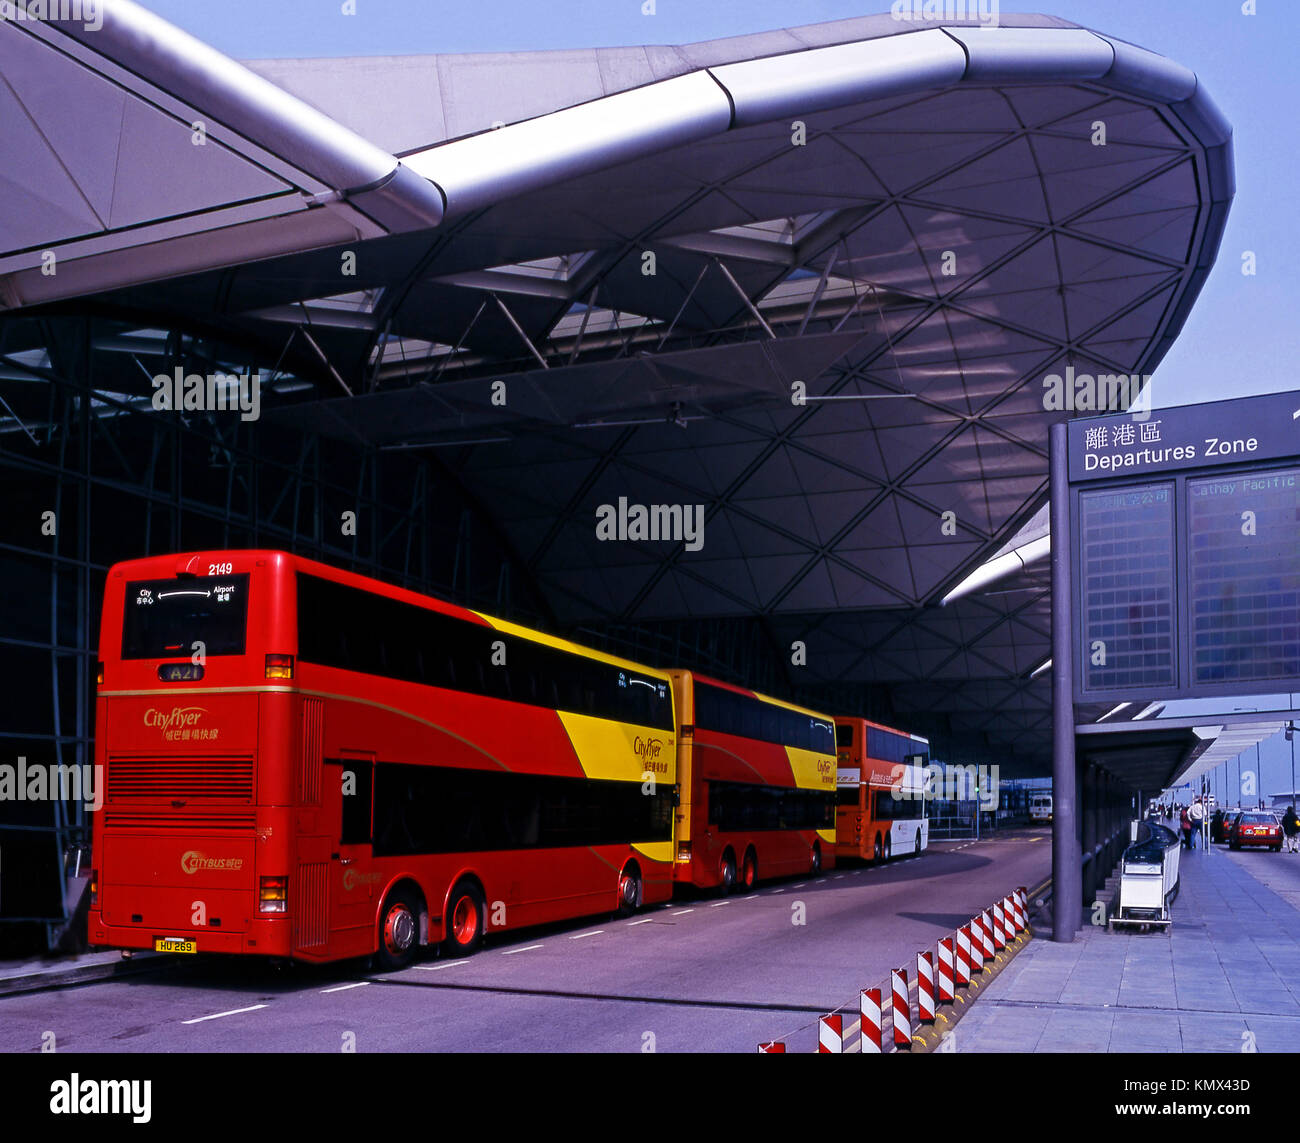 Chep Lak Kok International Airport, Hong Kong, SAR, China - Stock Image